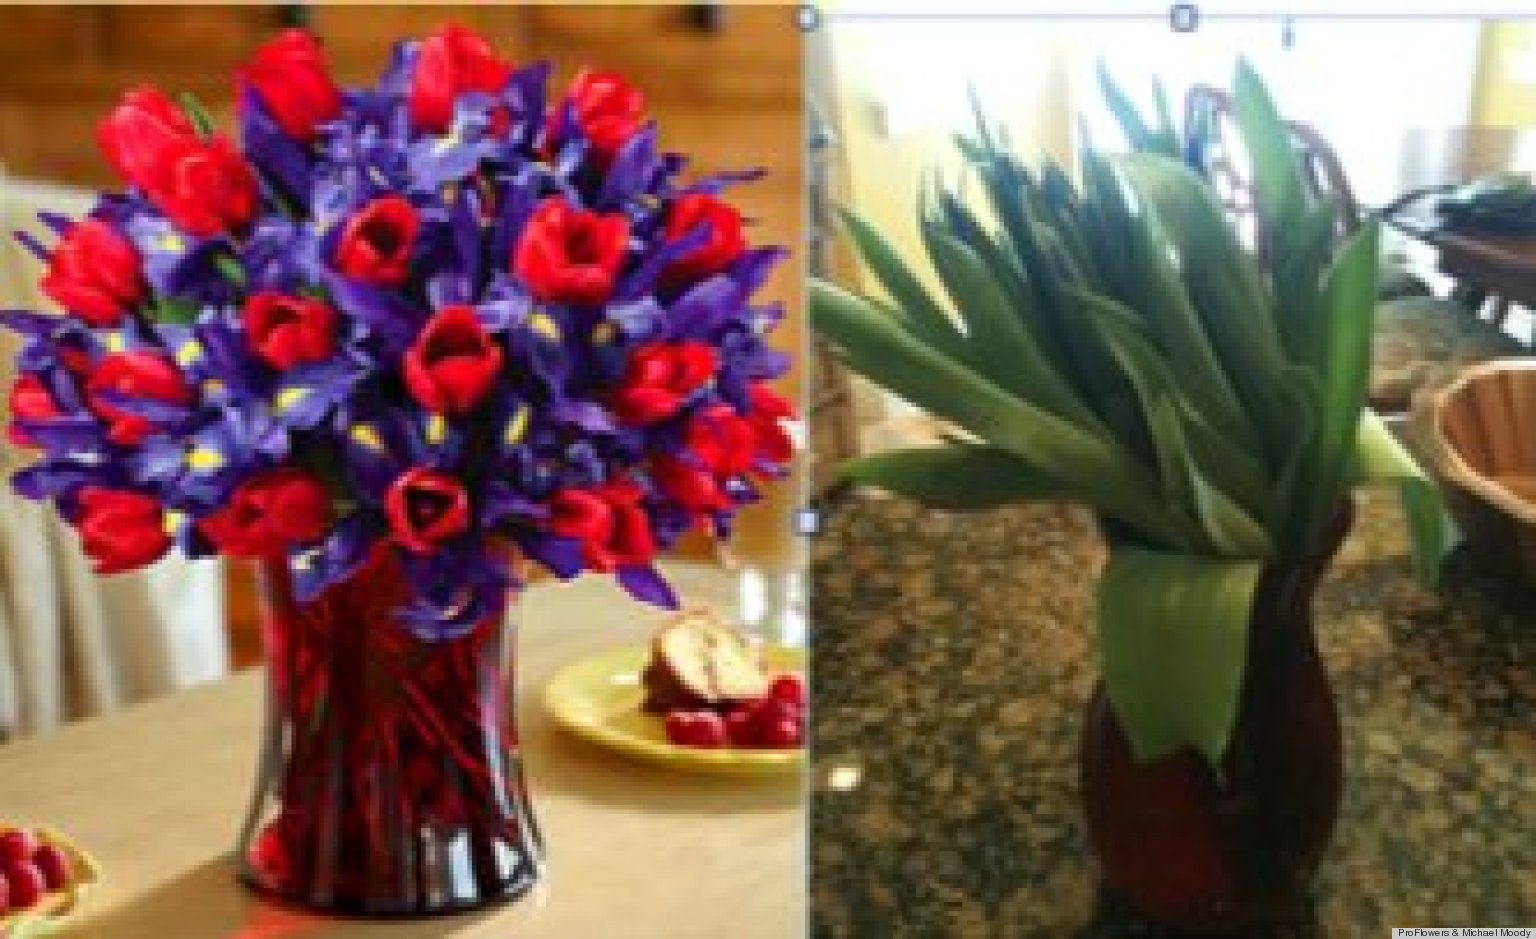 ProFlowers Receives Barrage Of Twitter Complaints